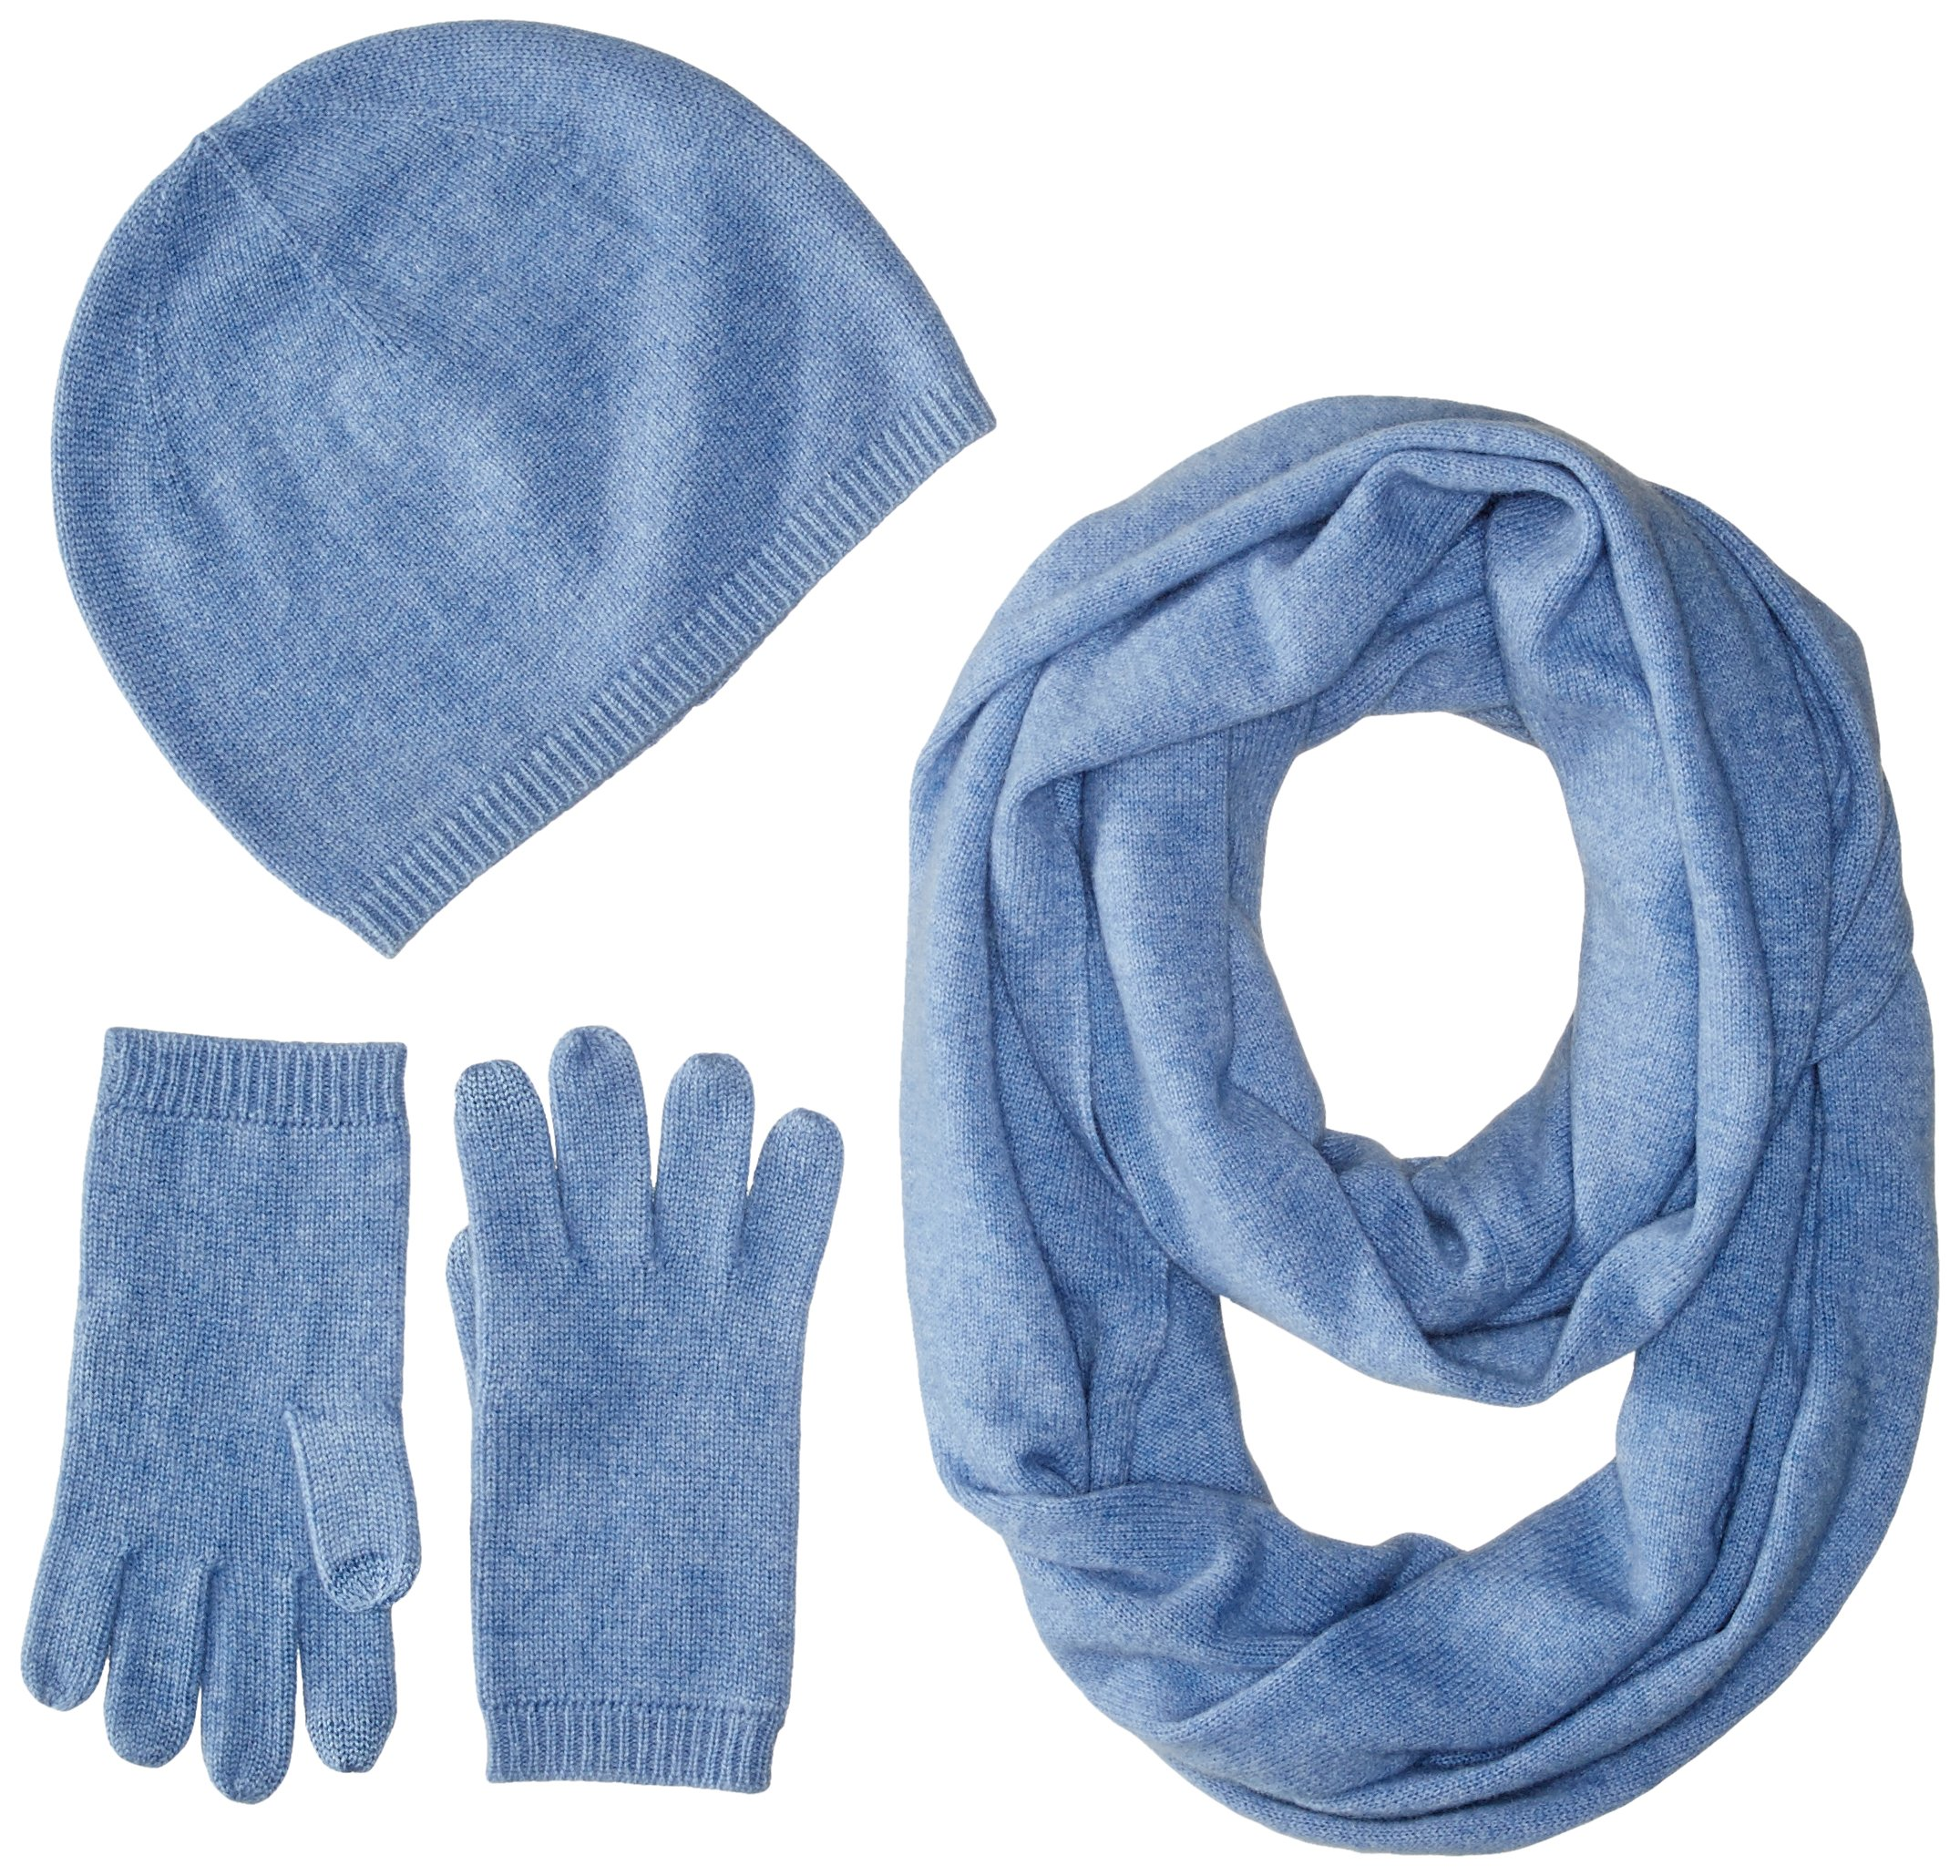 Sofia Cashmere Women's Gift Box Set - Hat, Smartphone Gloves, and Infinity Scarf, dusty blue, ONE by Sofia Cashmere